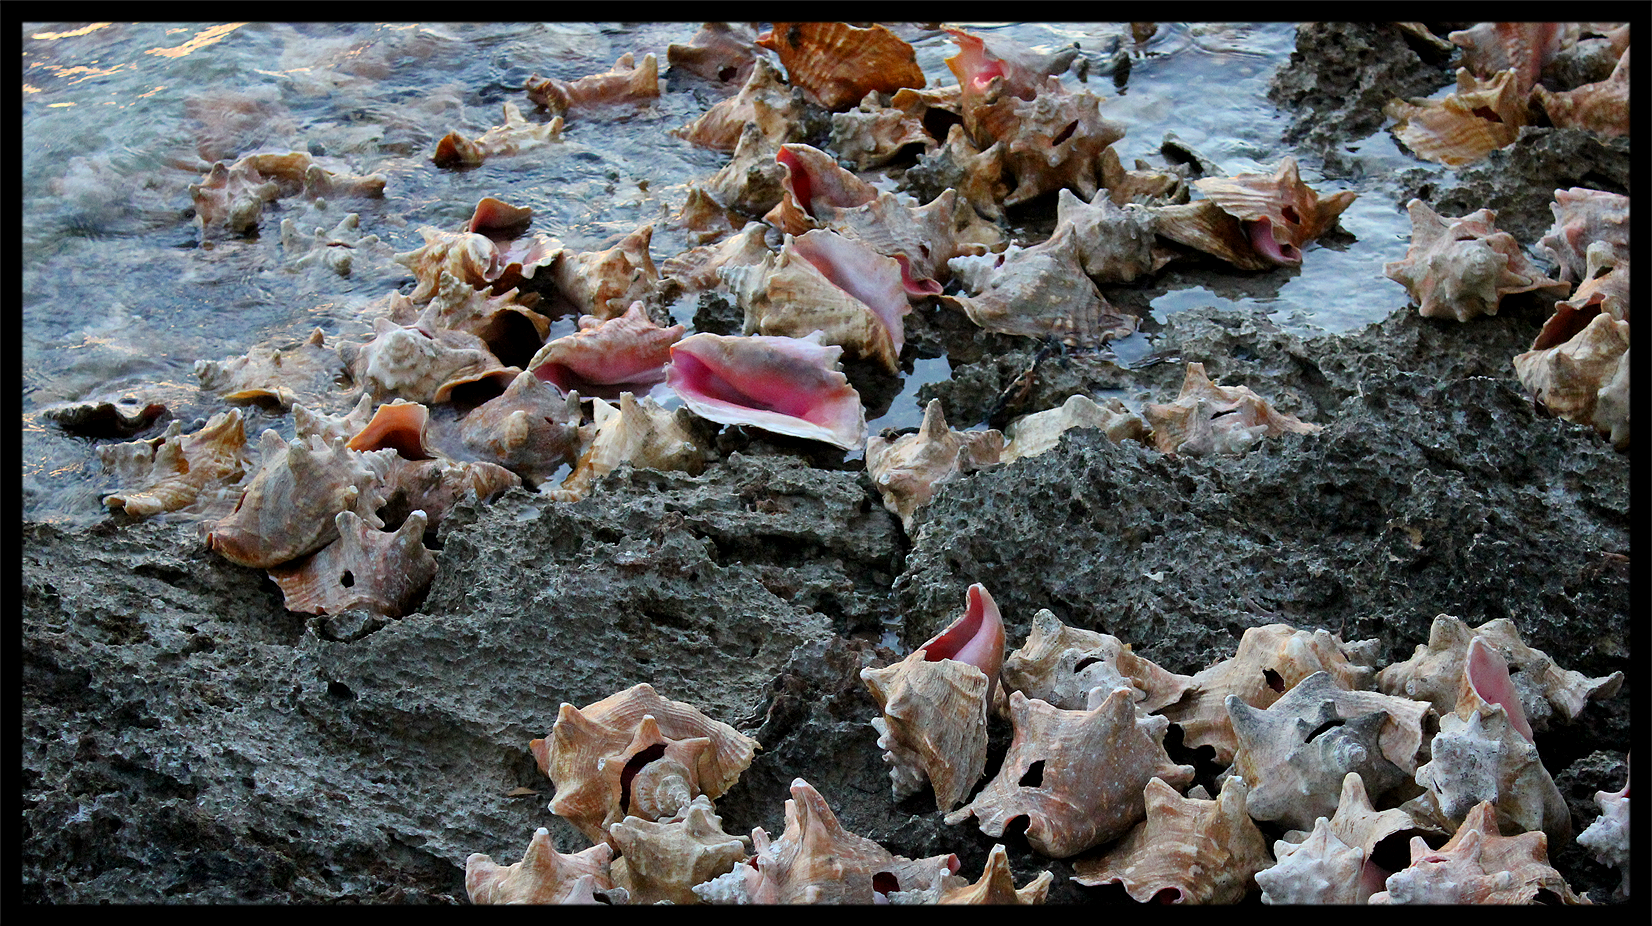 CONCH SHELLS AT LOW TIDE